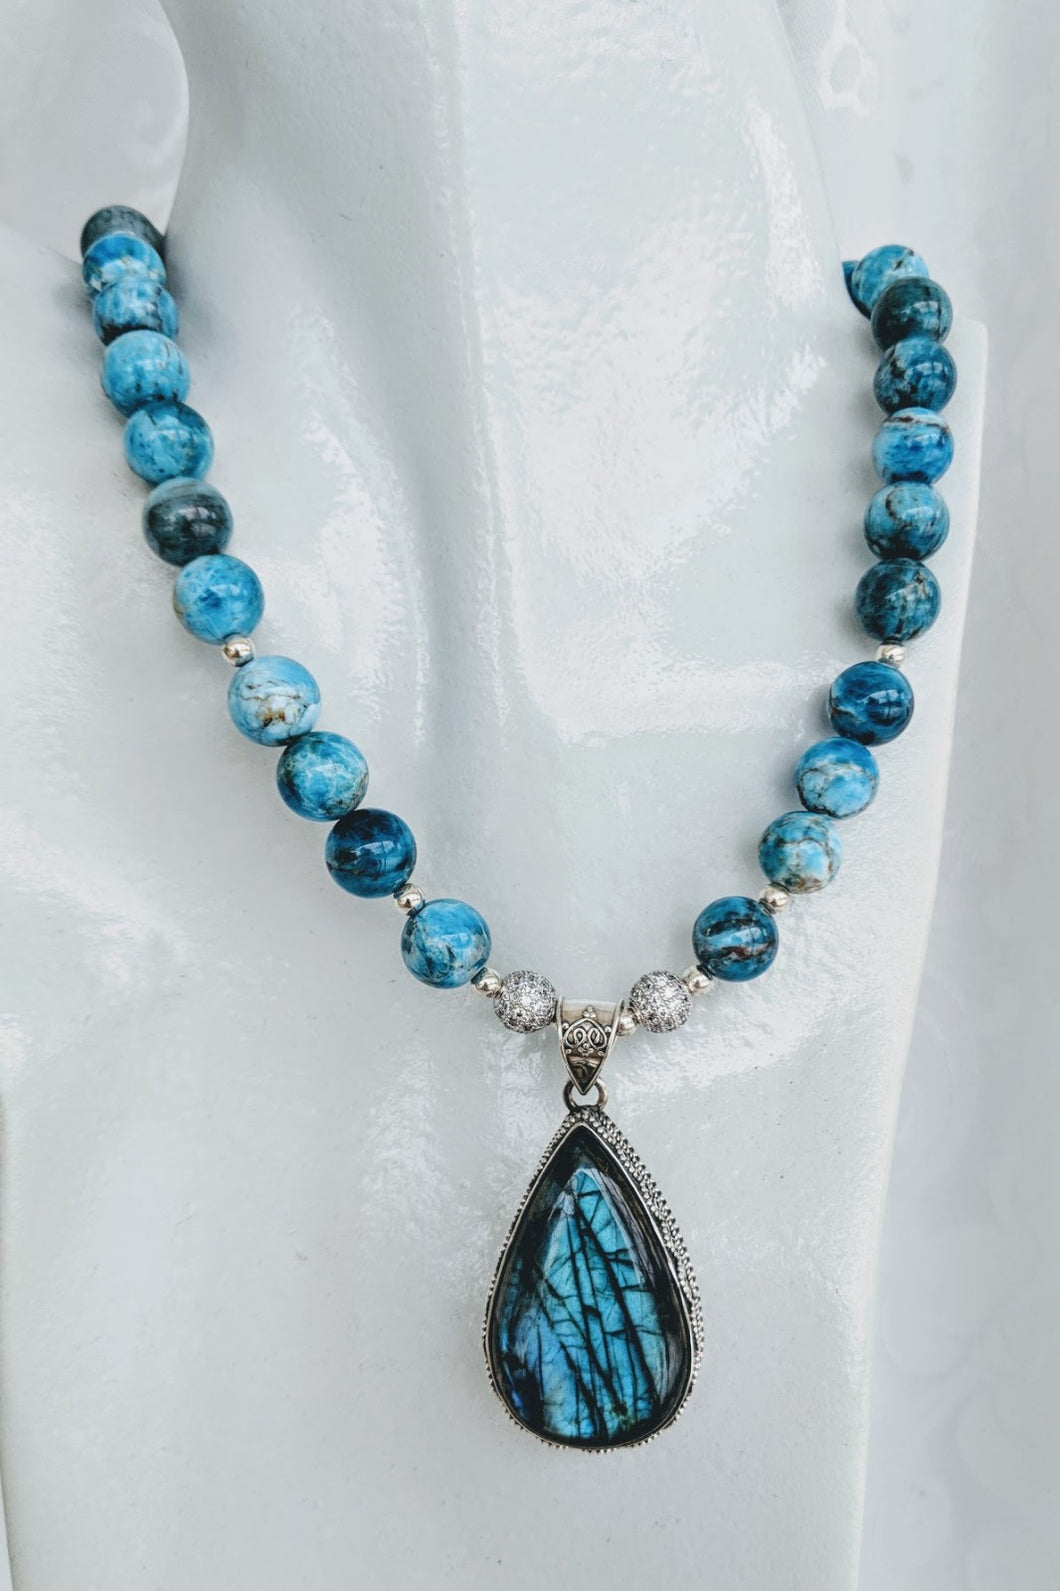 Natural Apatite with Labradorite pendant necklace